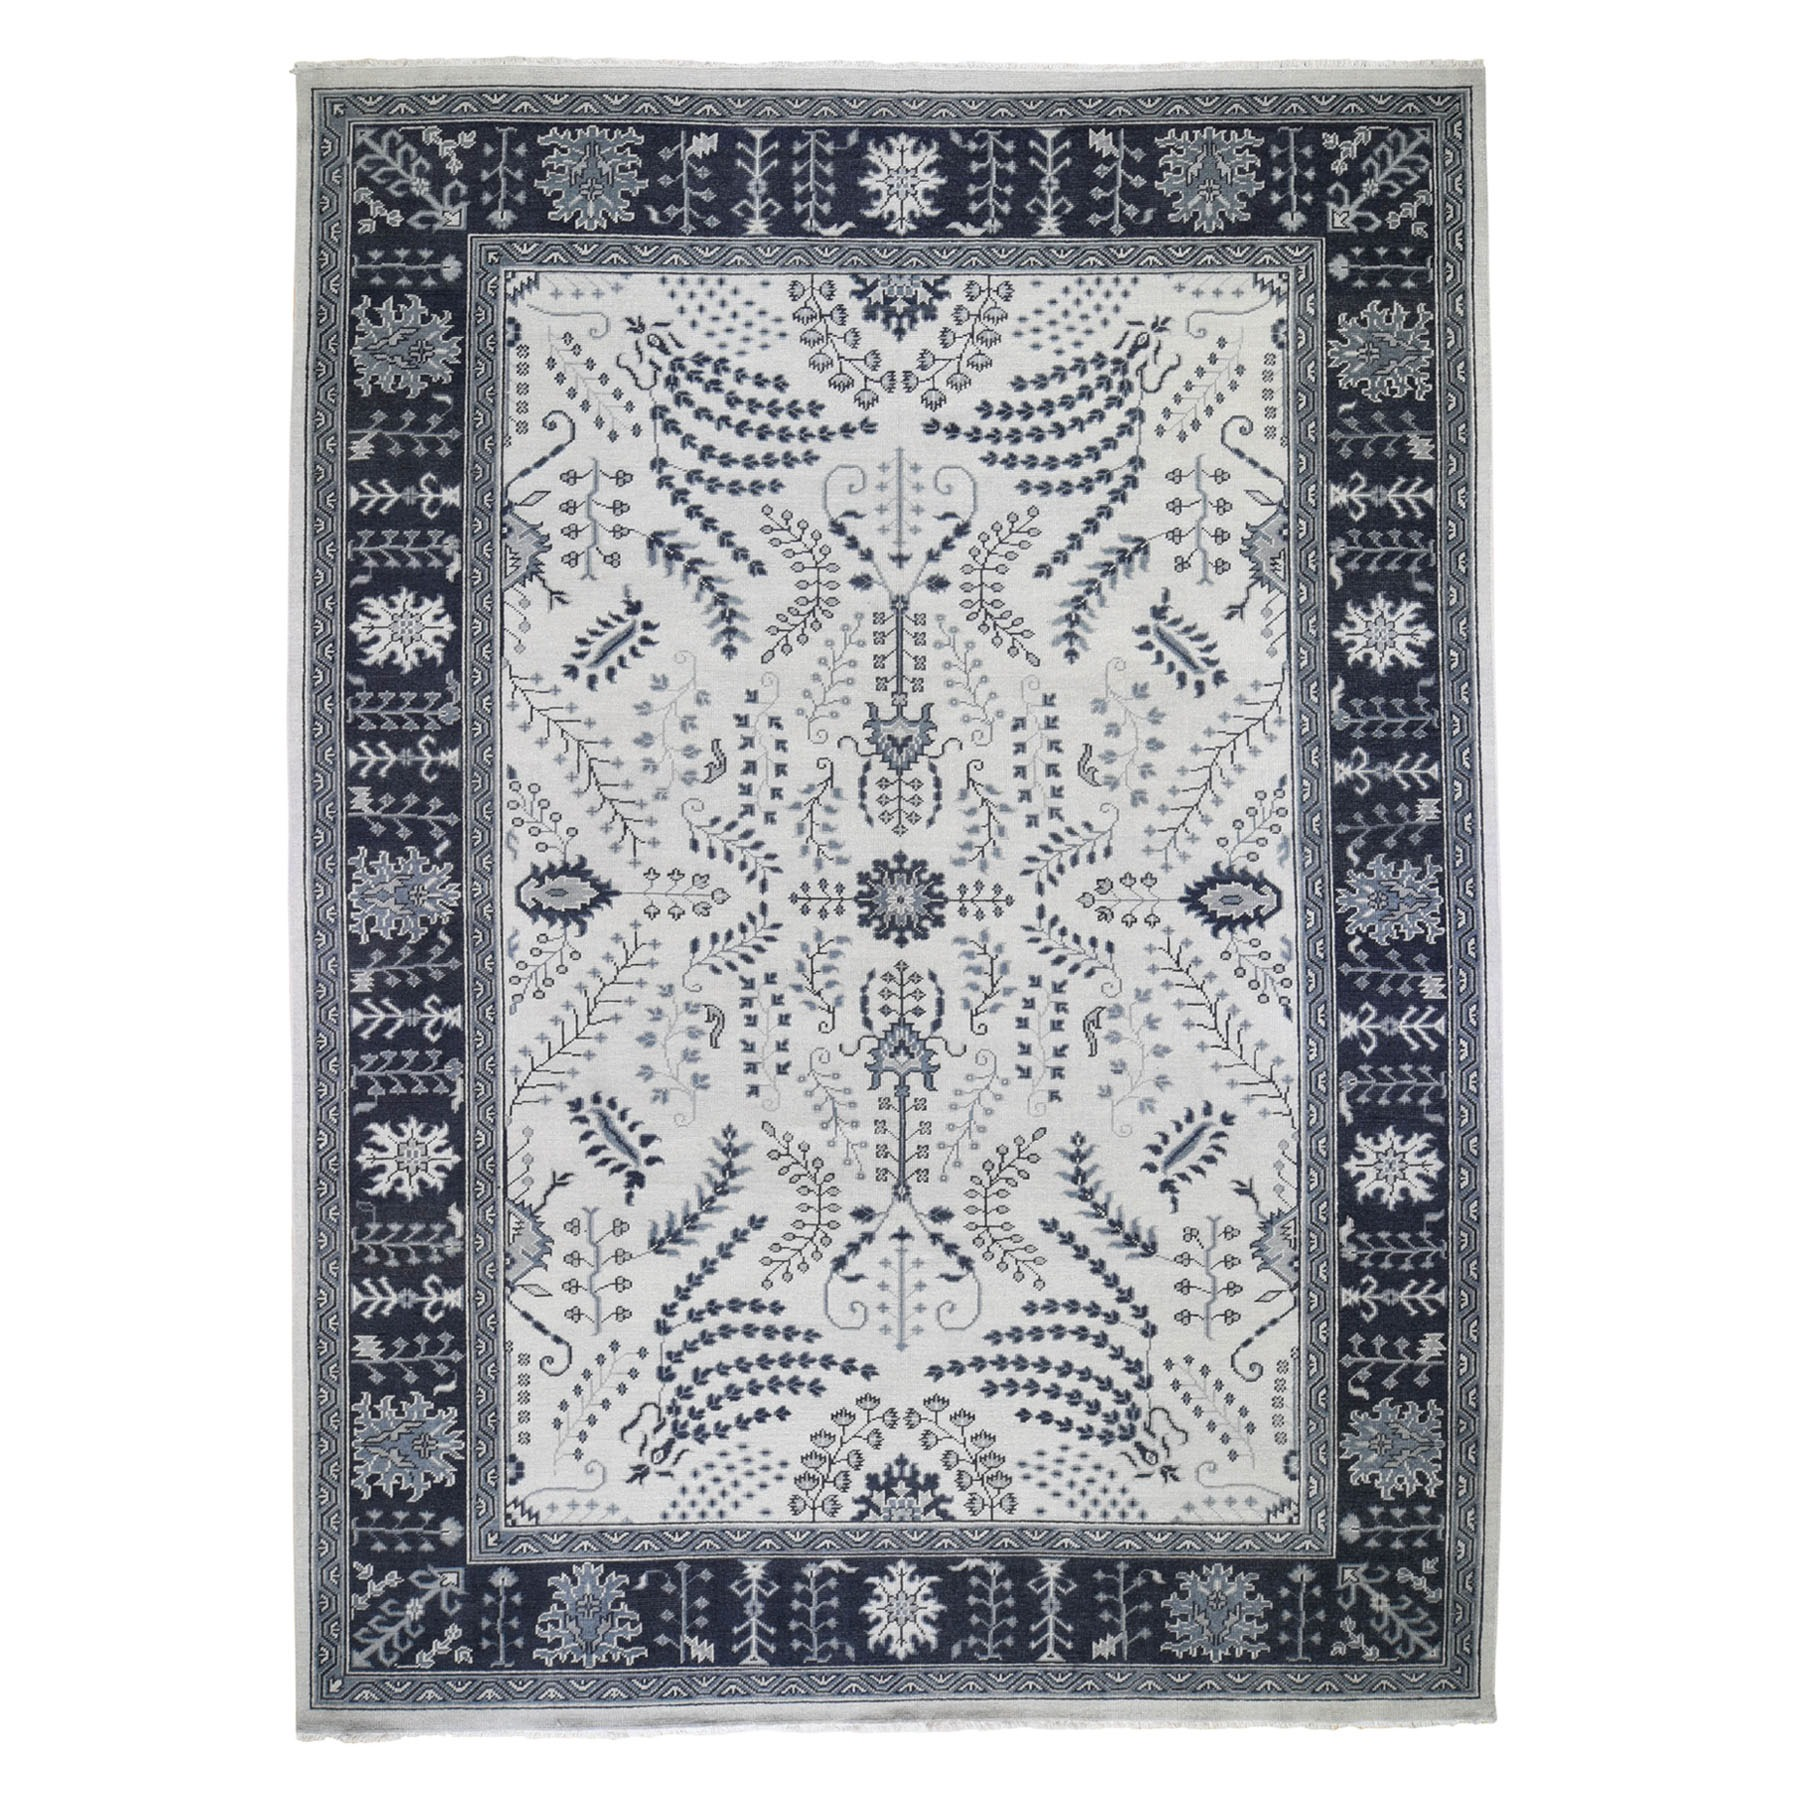 10'X14' Gray Turkish Knot Oushak Pure Wool Hand Knotted Oriental Rug moad7970